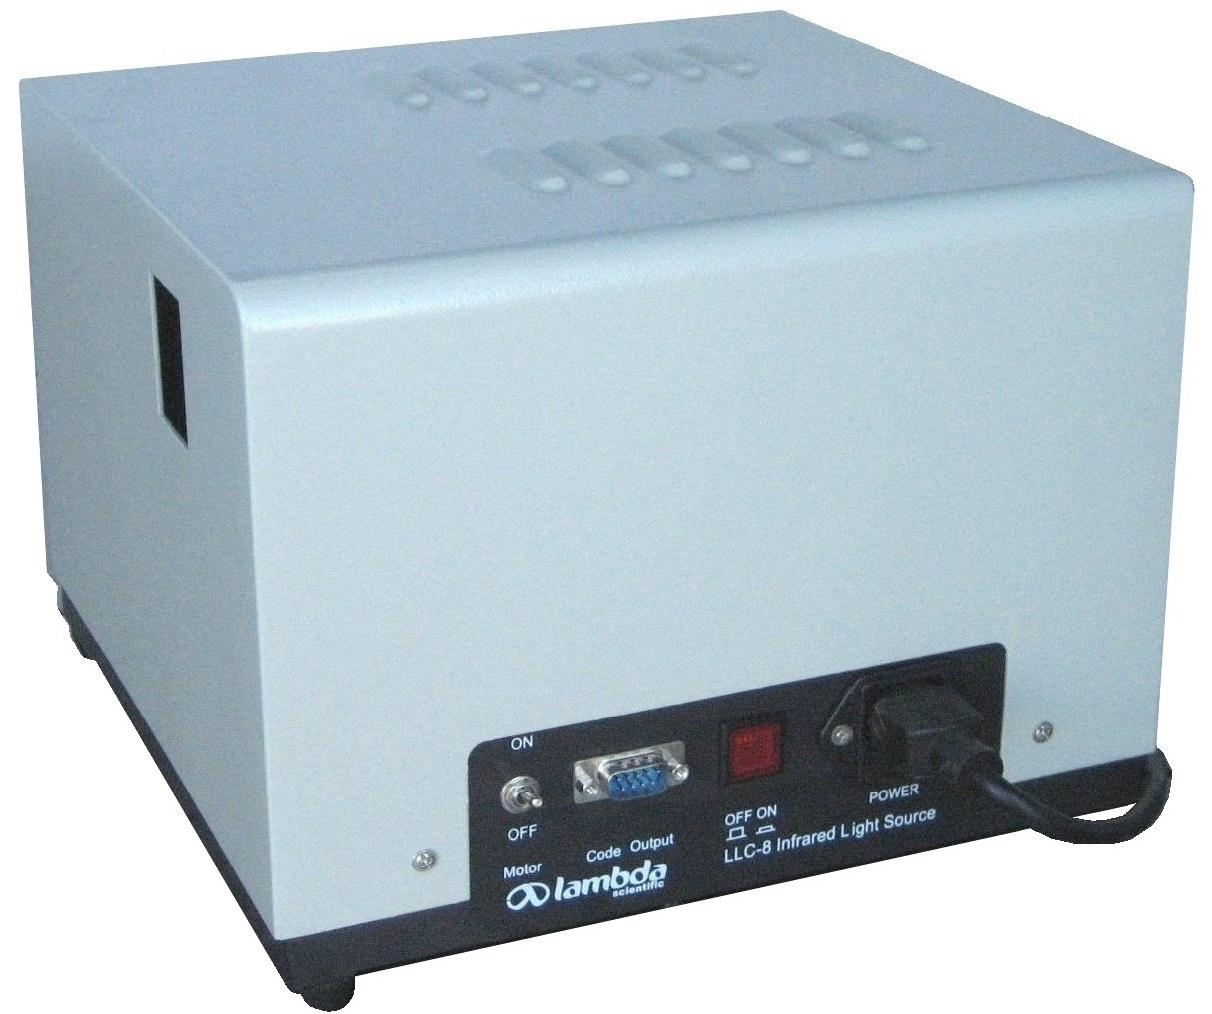 LLC-8 Infrared Light Source